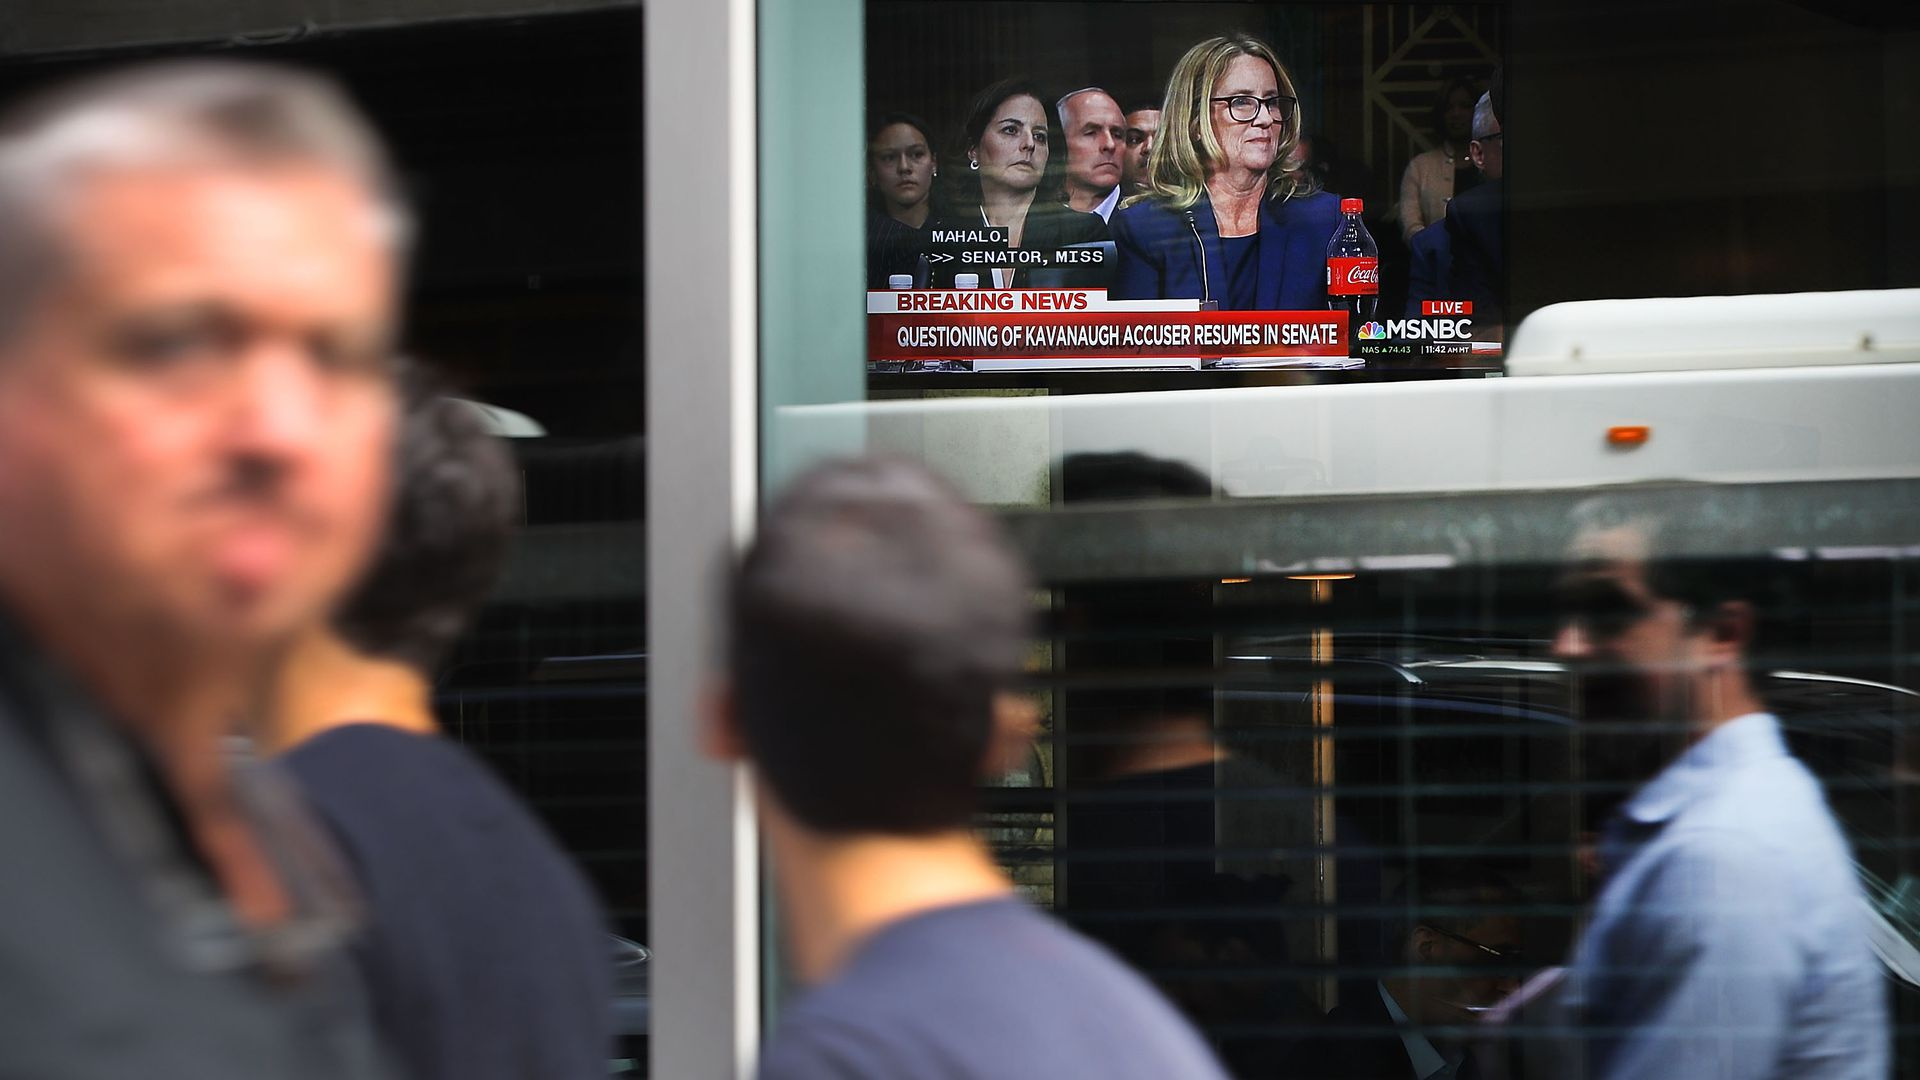 People walk by as the Ford hearing plays on a TV inside a window.